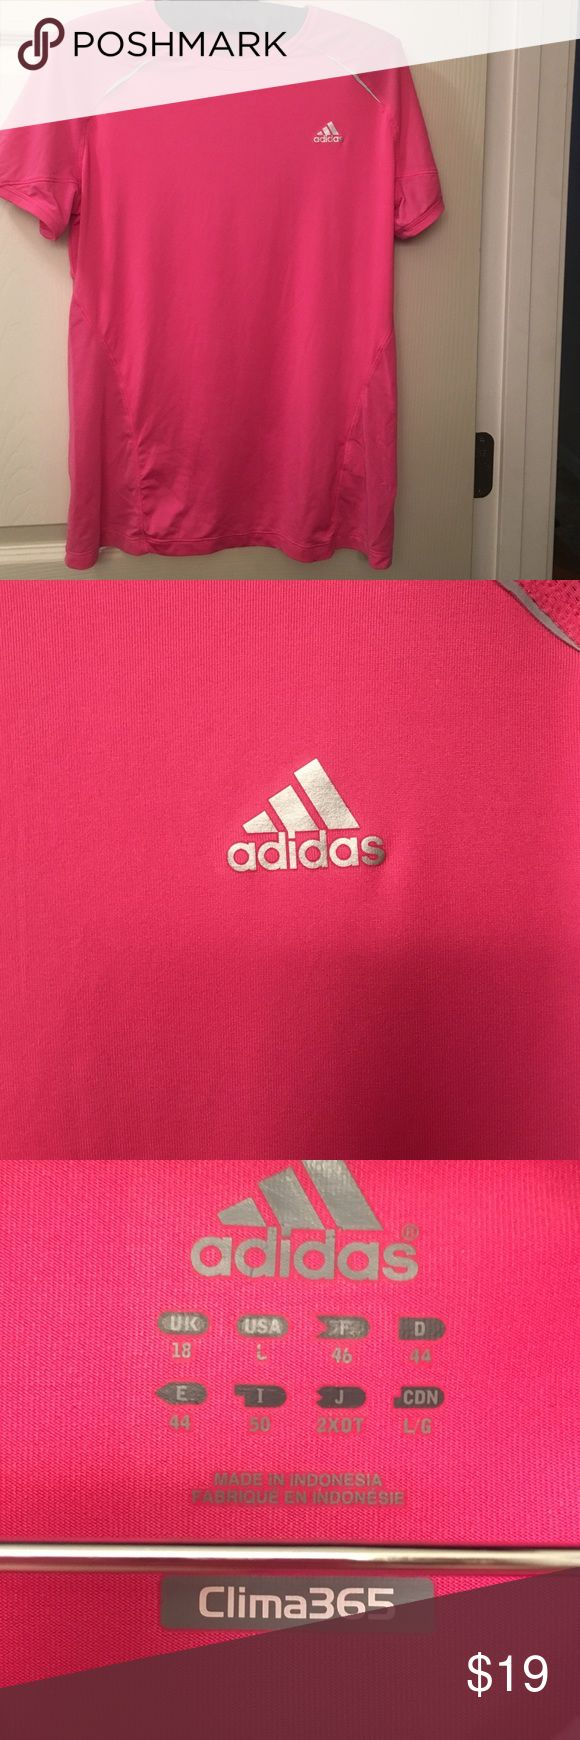 Adidas Clima365 Beautiful pink with  silver logo.   Says USA Large.   One of the logos on the back down under the arm area is peeling off.   Otherwise looks great.         Bundle and save. Adidas Tops Tees - Short Sleeve